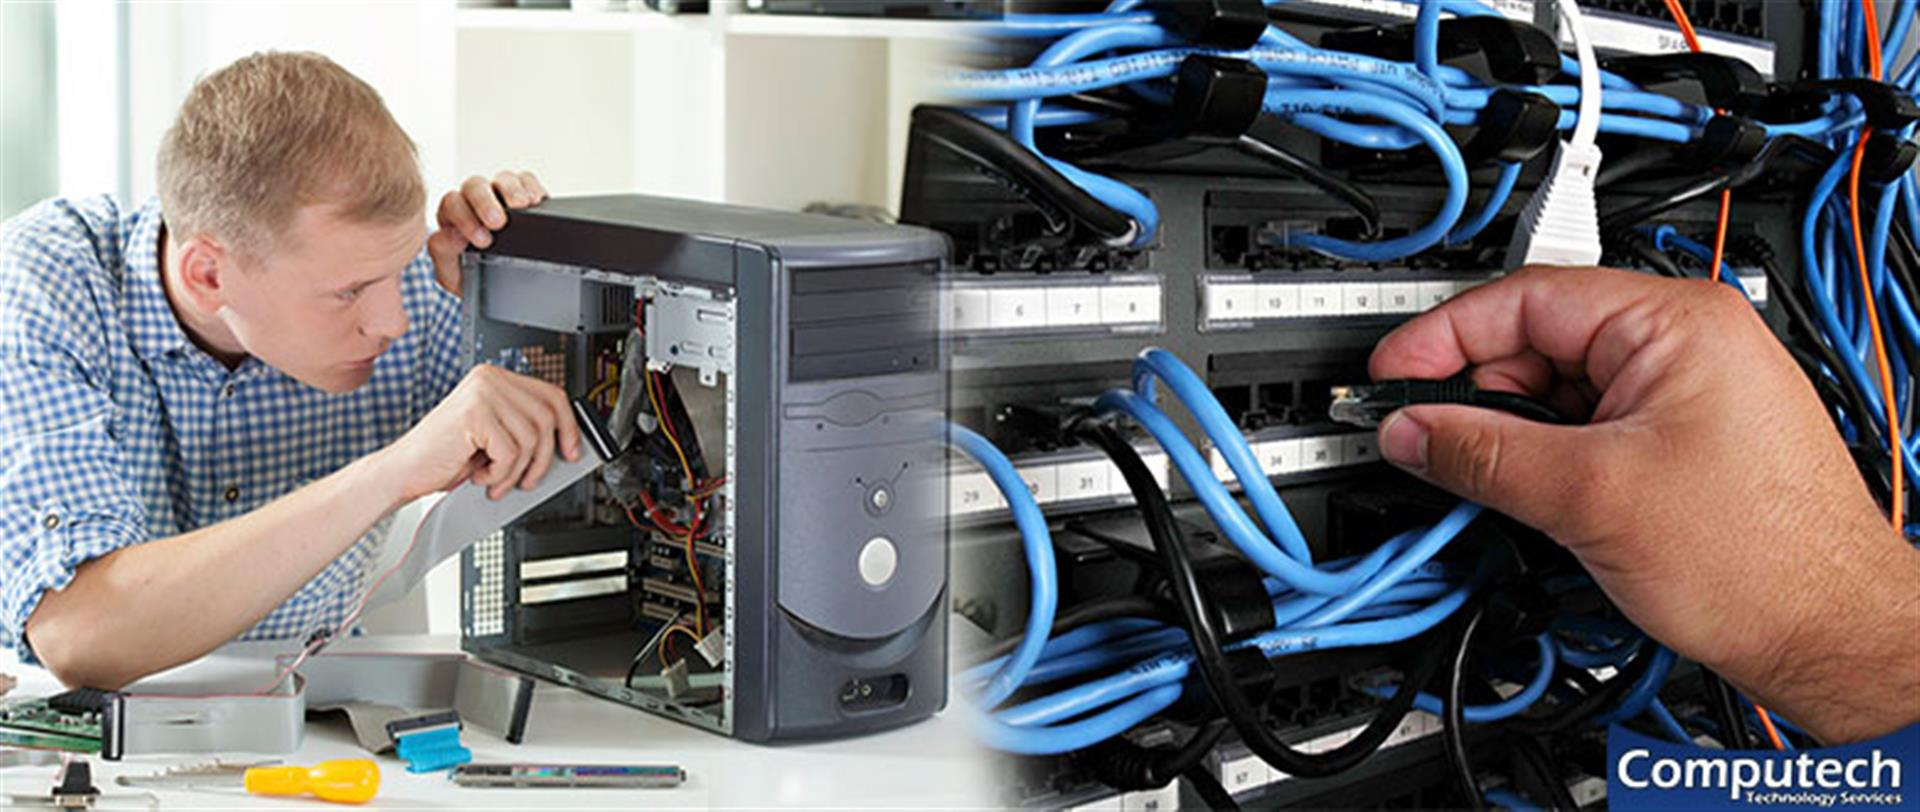 Athens Alabama On-Site Computer PC & Printer Repair, Networking, Voice & Data Wiring Solutions